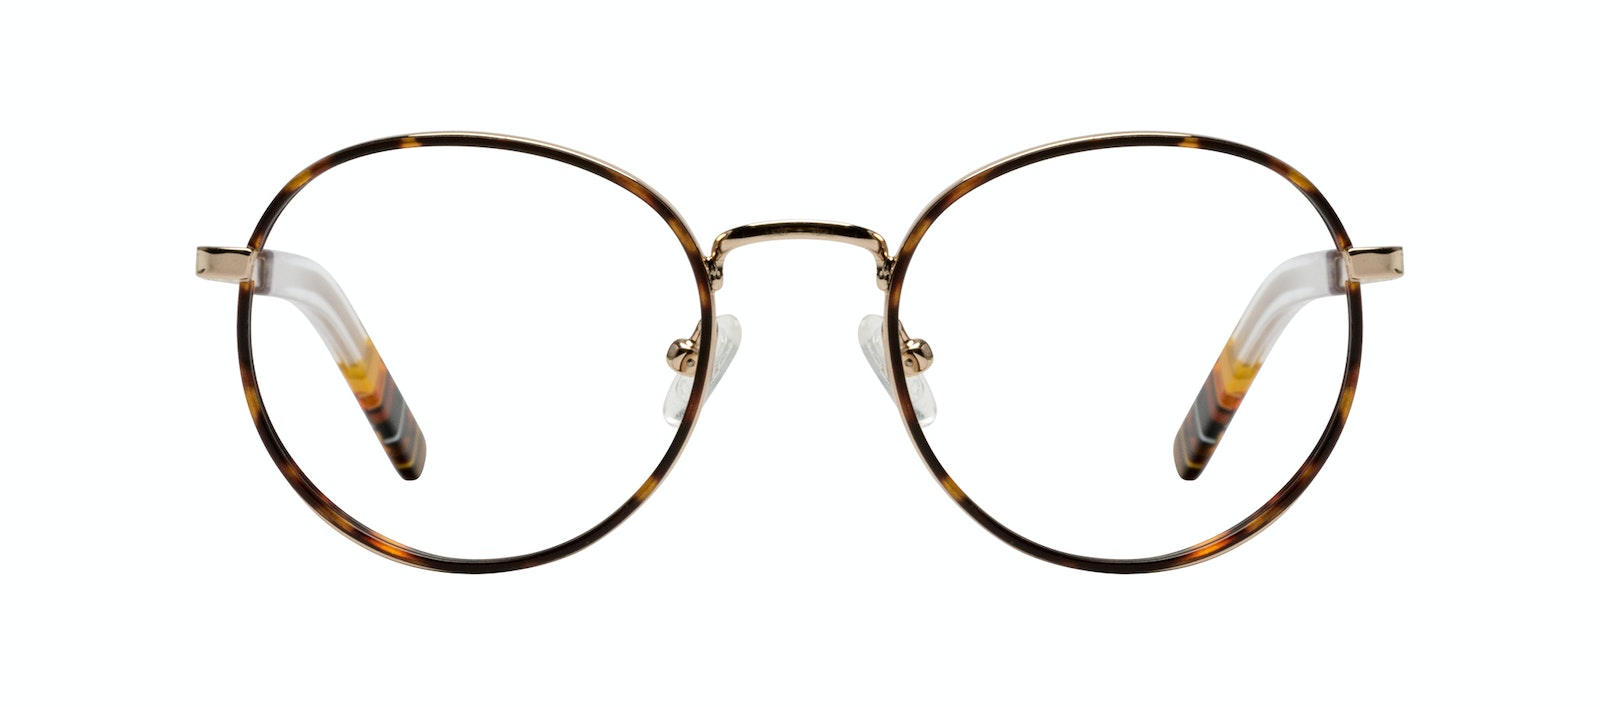 Affordable Fashion Glasses Round Eyeglasses Men Reach Tortoise Front